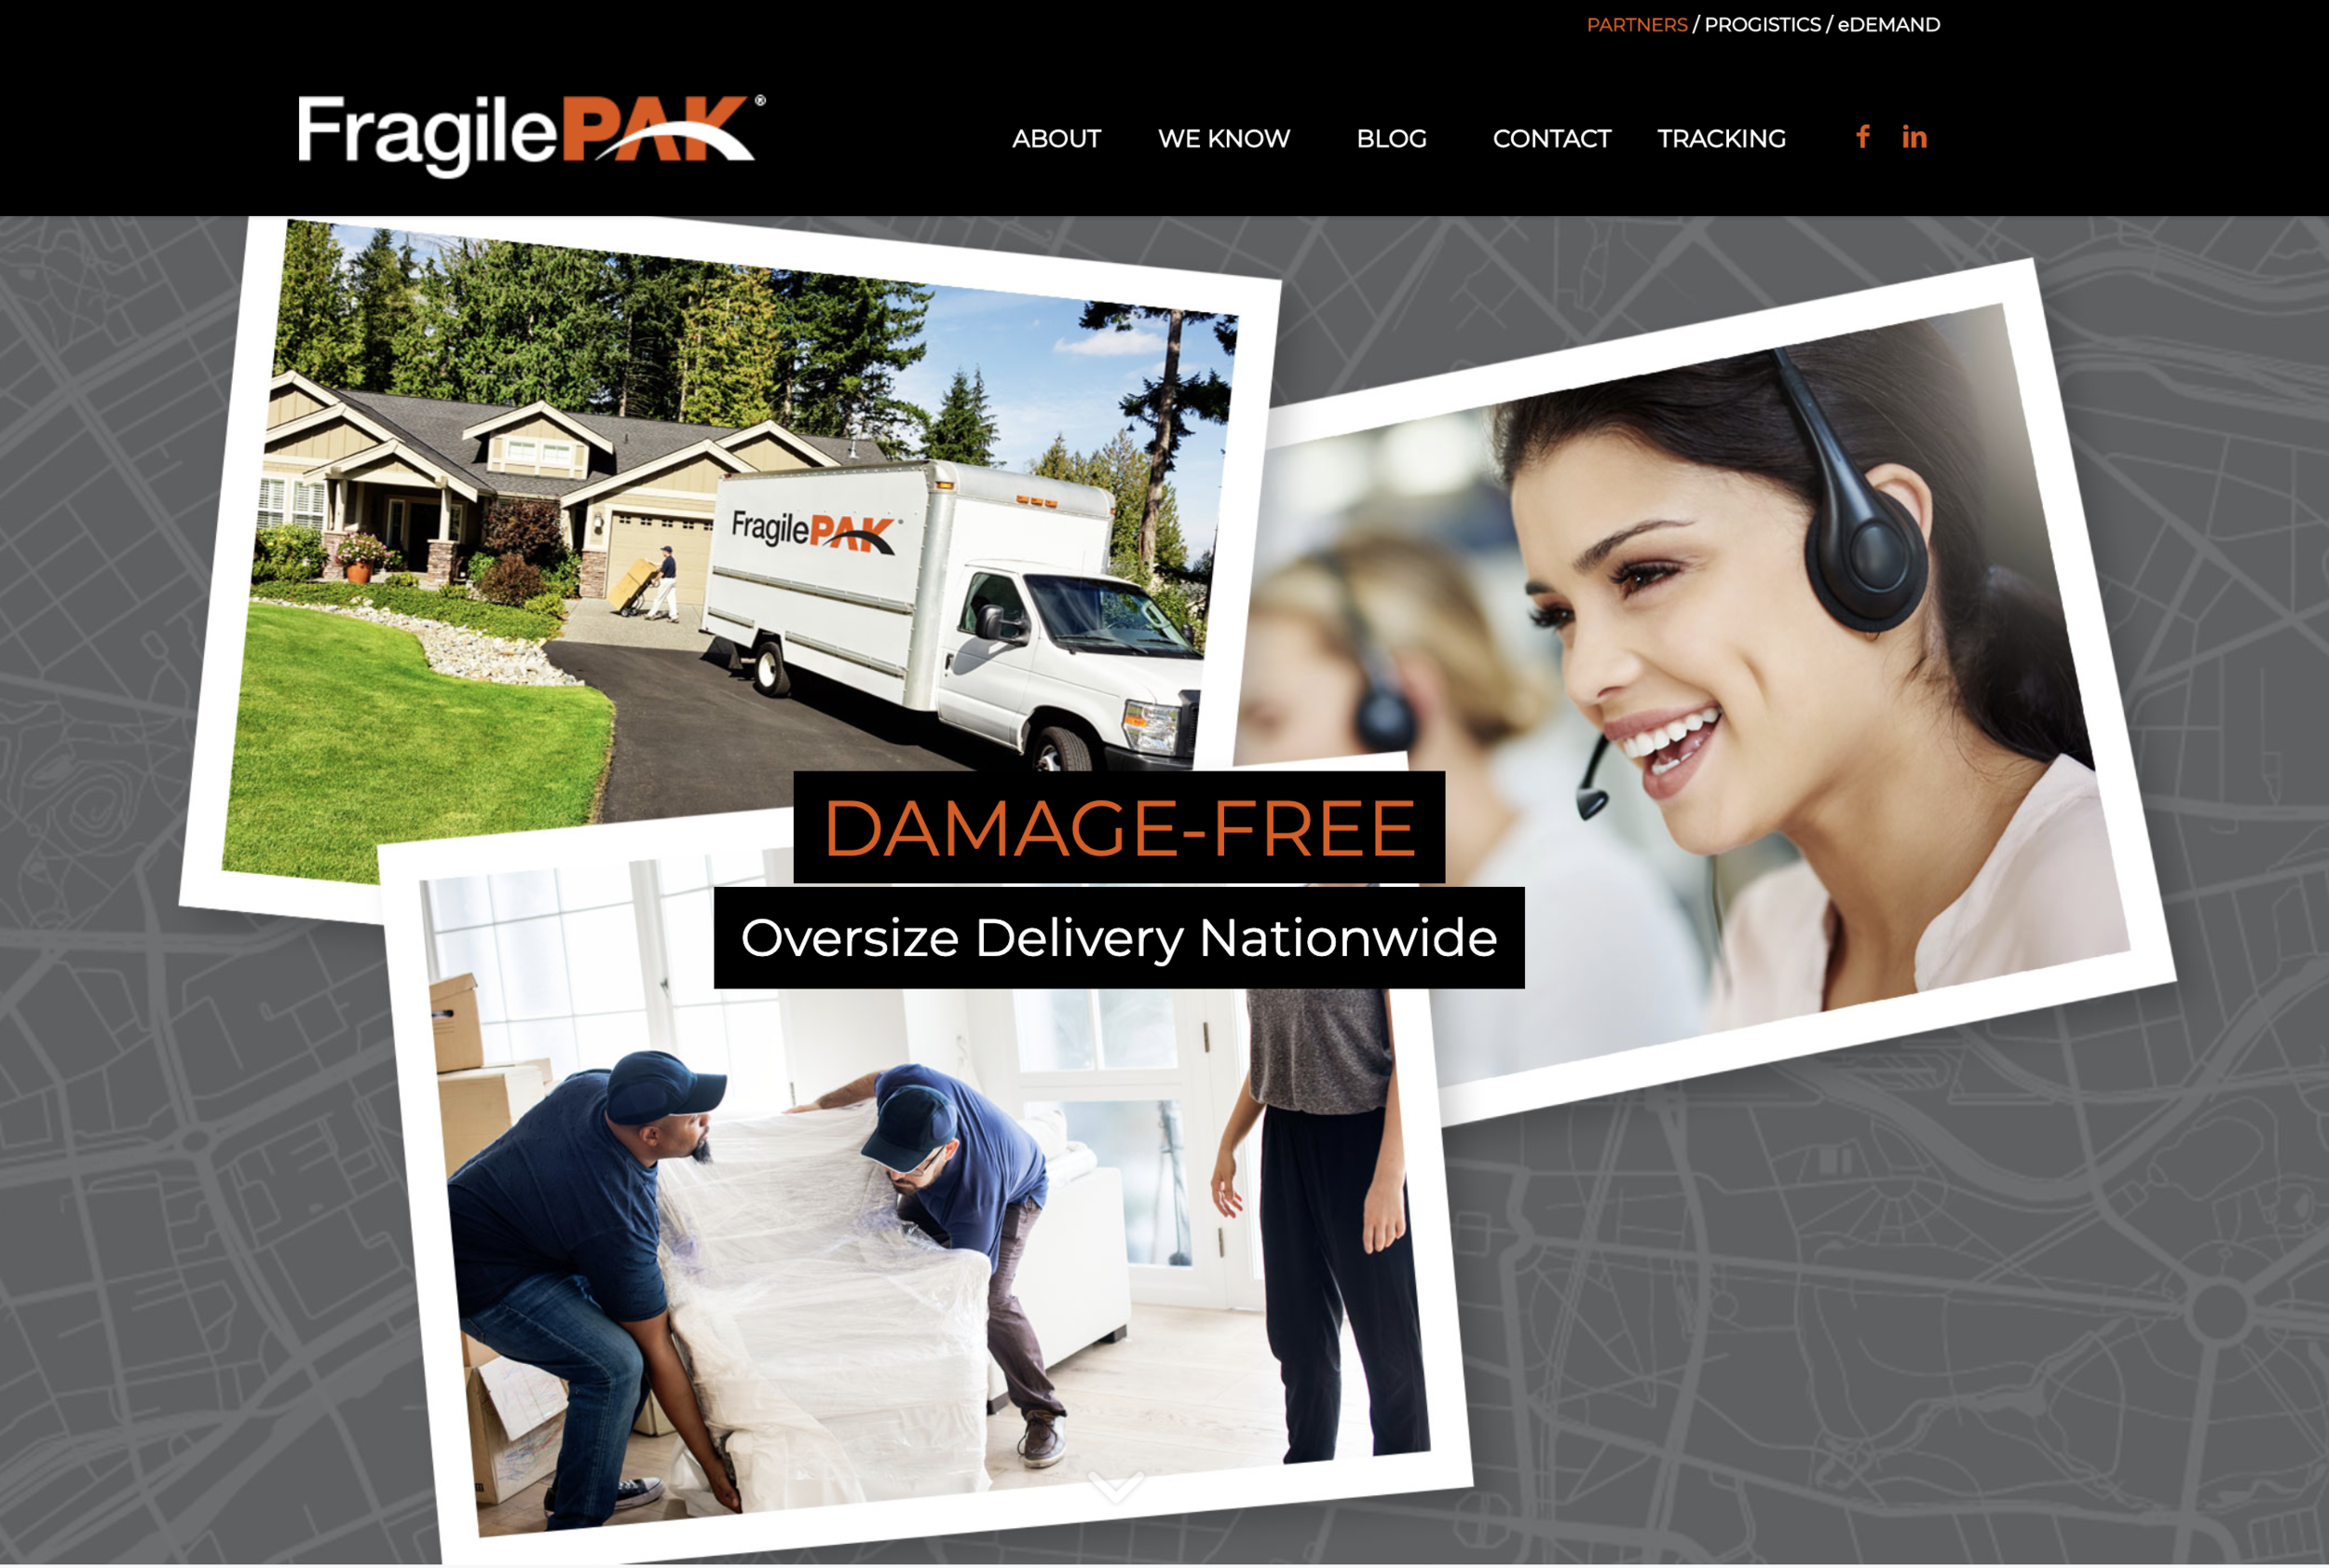 - Designed website layout and copy for FragilePAK, a premier specialist in factory to door delivery, offering Last Mile Delivery solutions to the B2B and B2C markets.